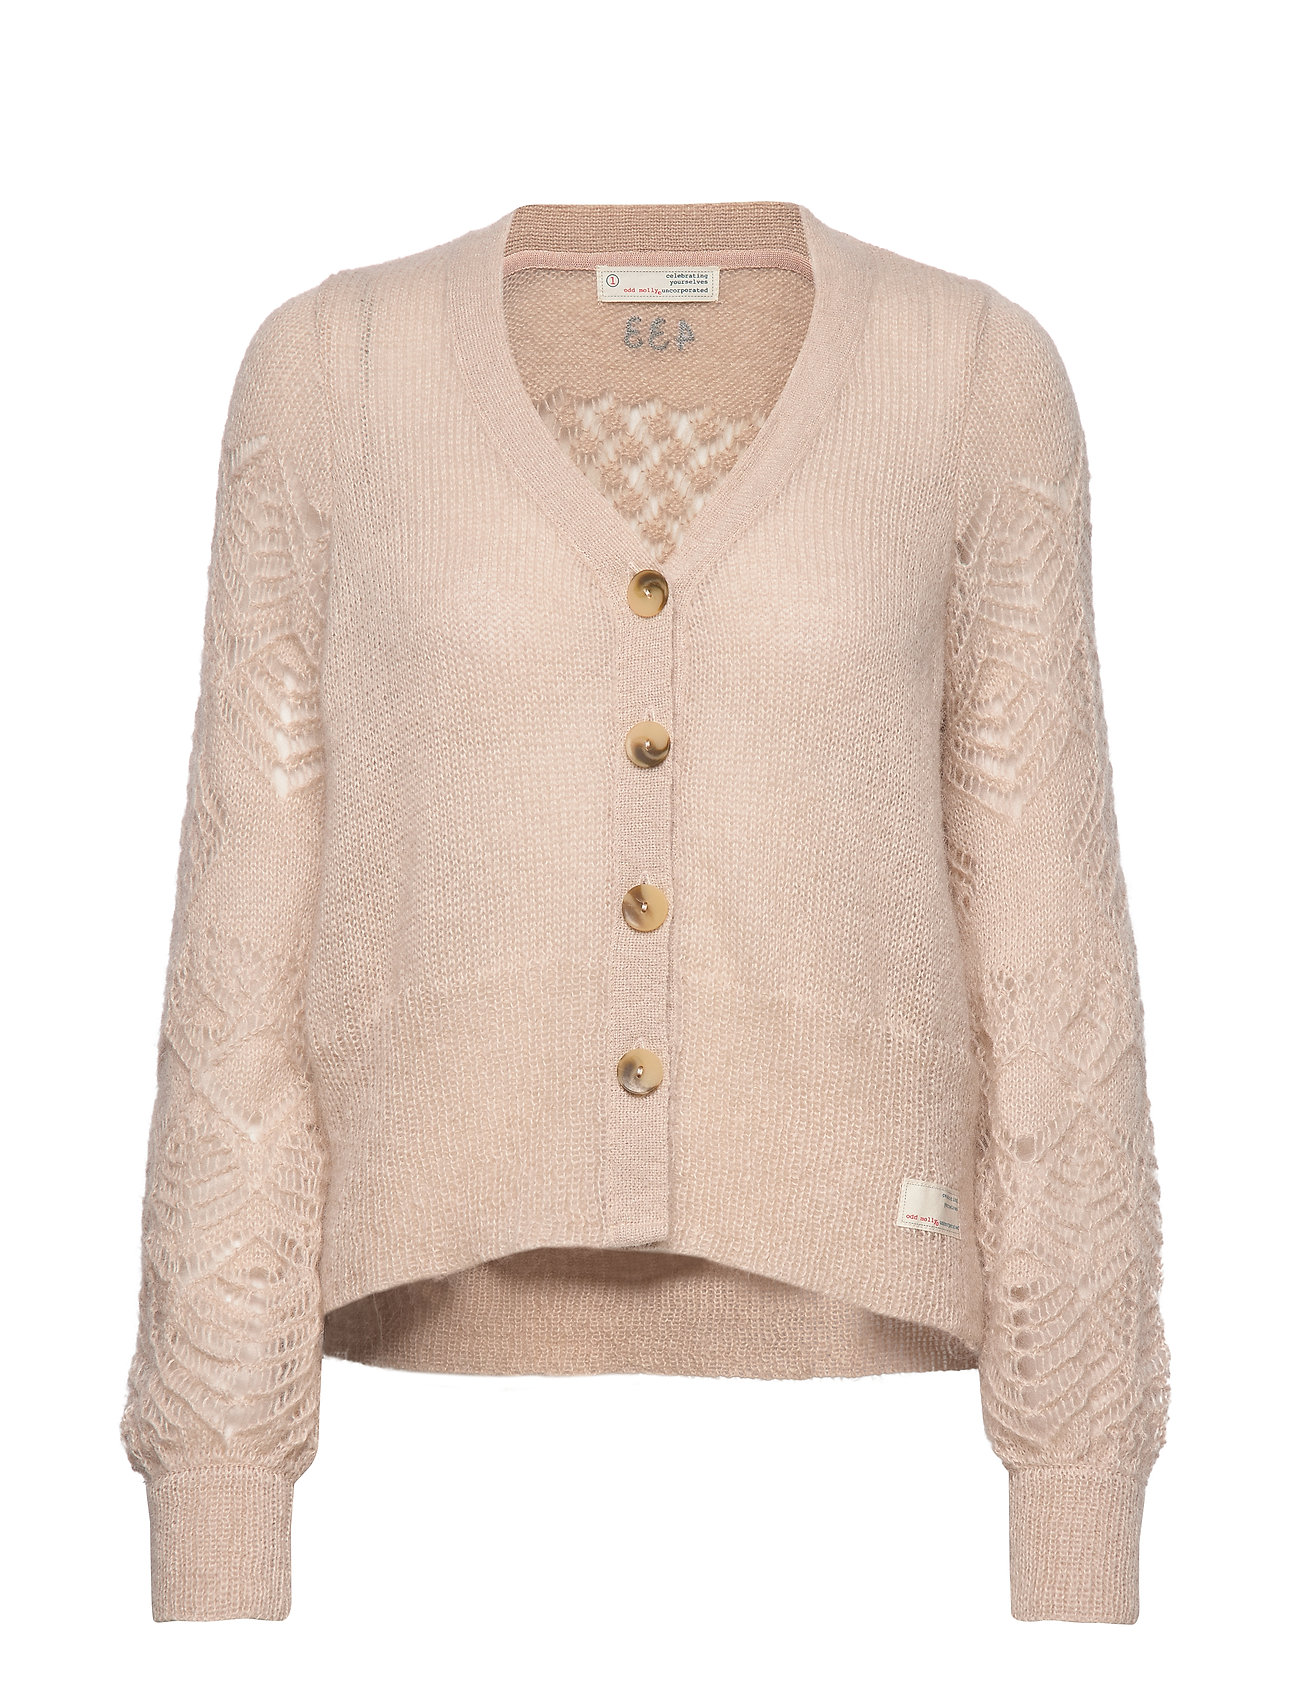 ODD MOLLY My New Aesthetic Cardigan - GOLDEN PORCELAIN